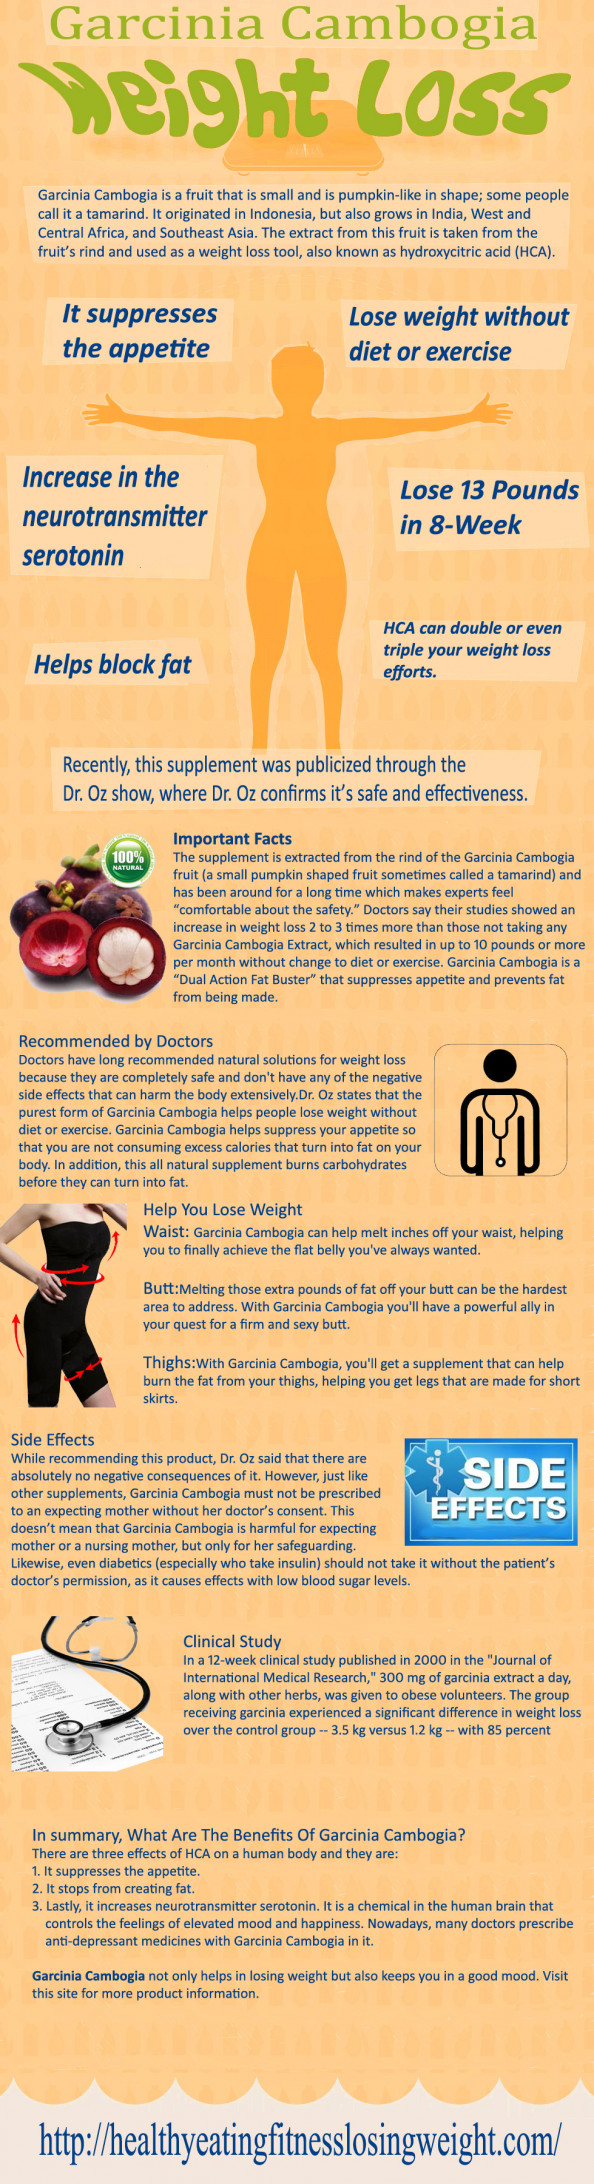 Garcinia extract for weight loss Infographic